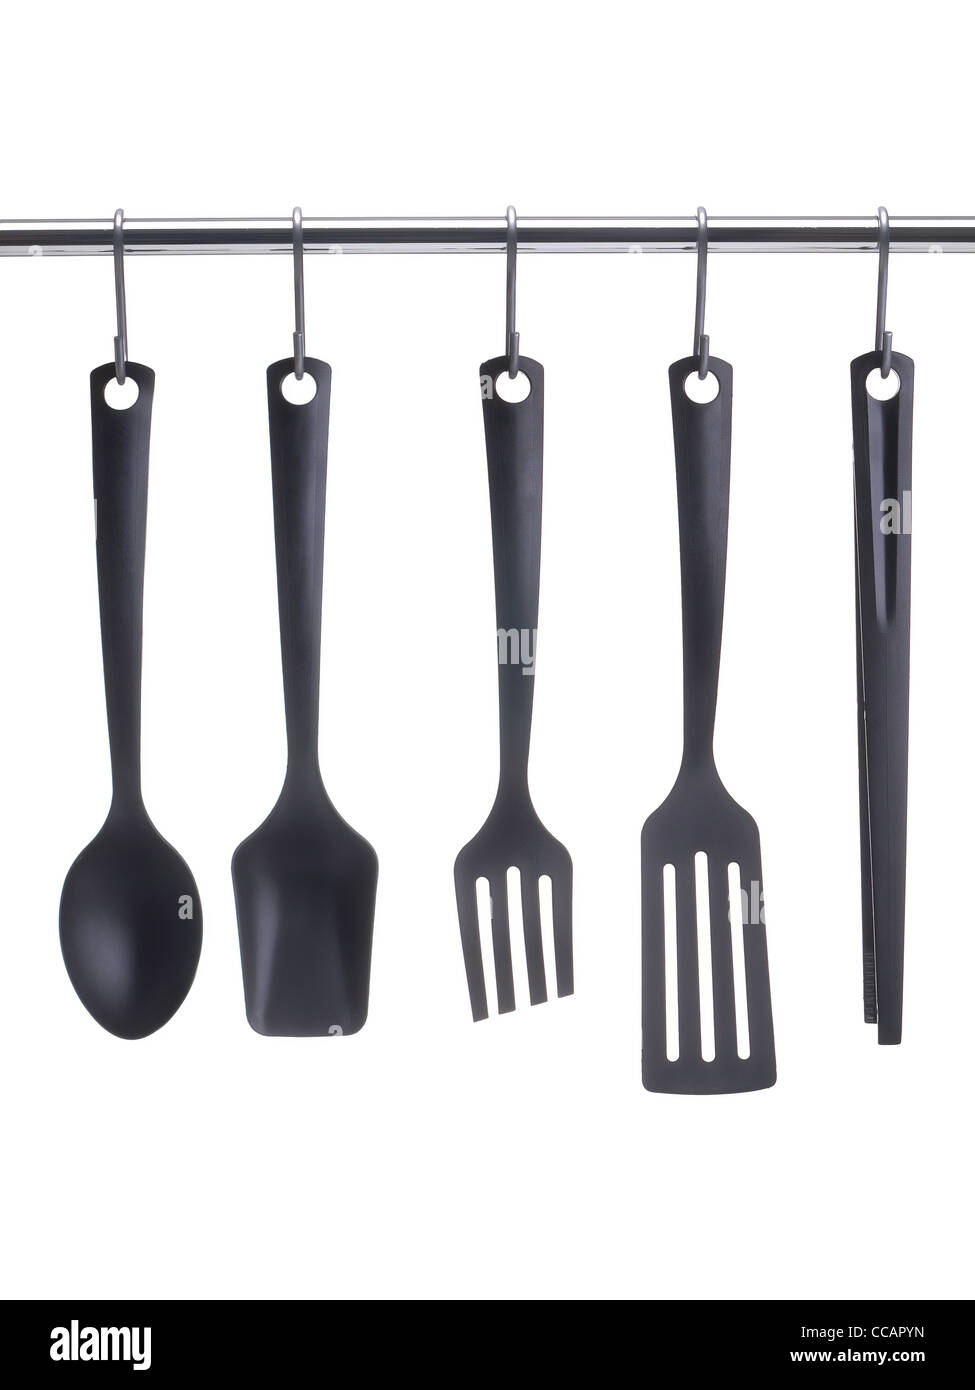 Black Plastic Kitchen Utensils Hanging On Metal Railing Over White  Background